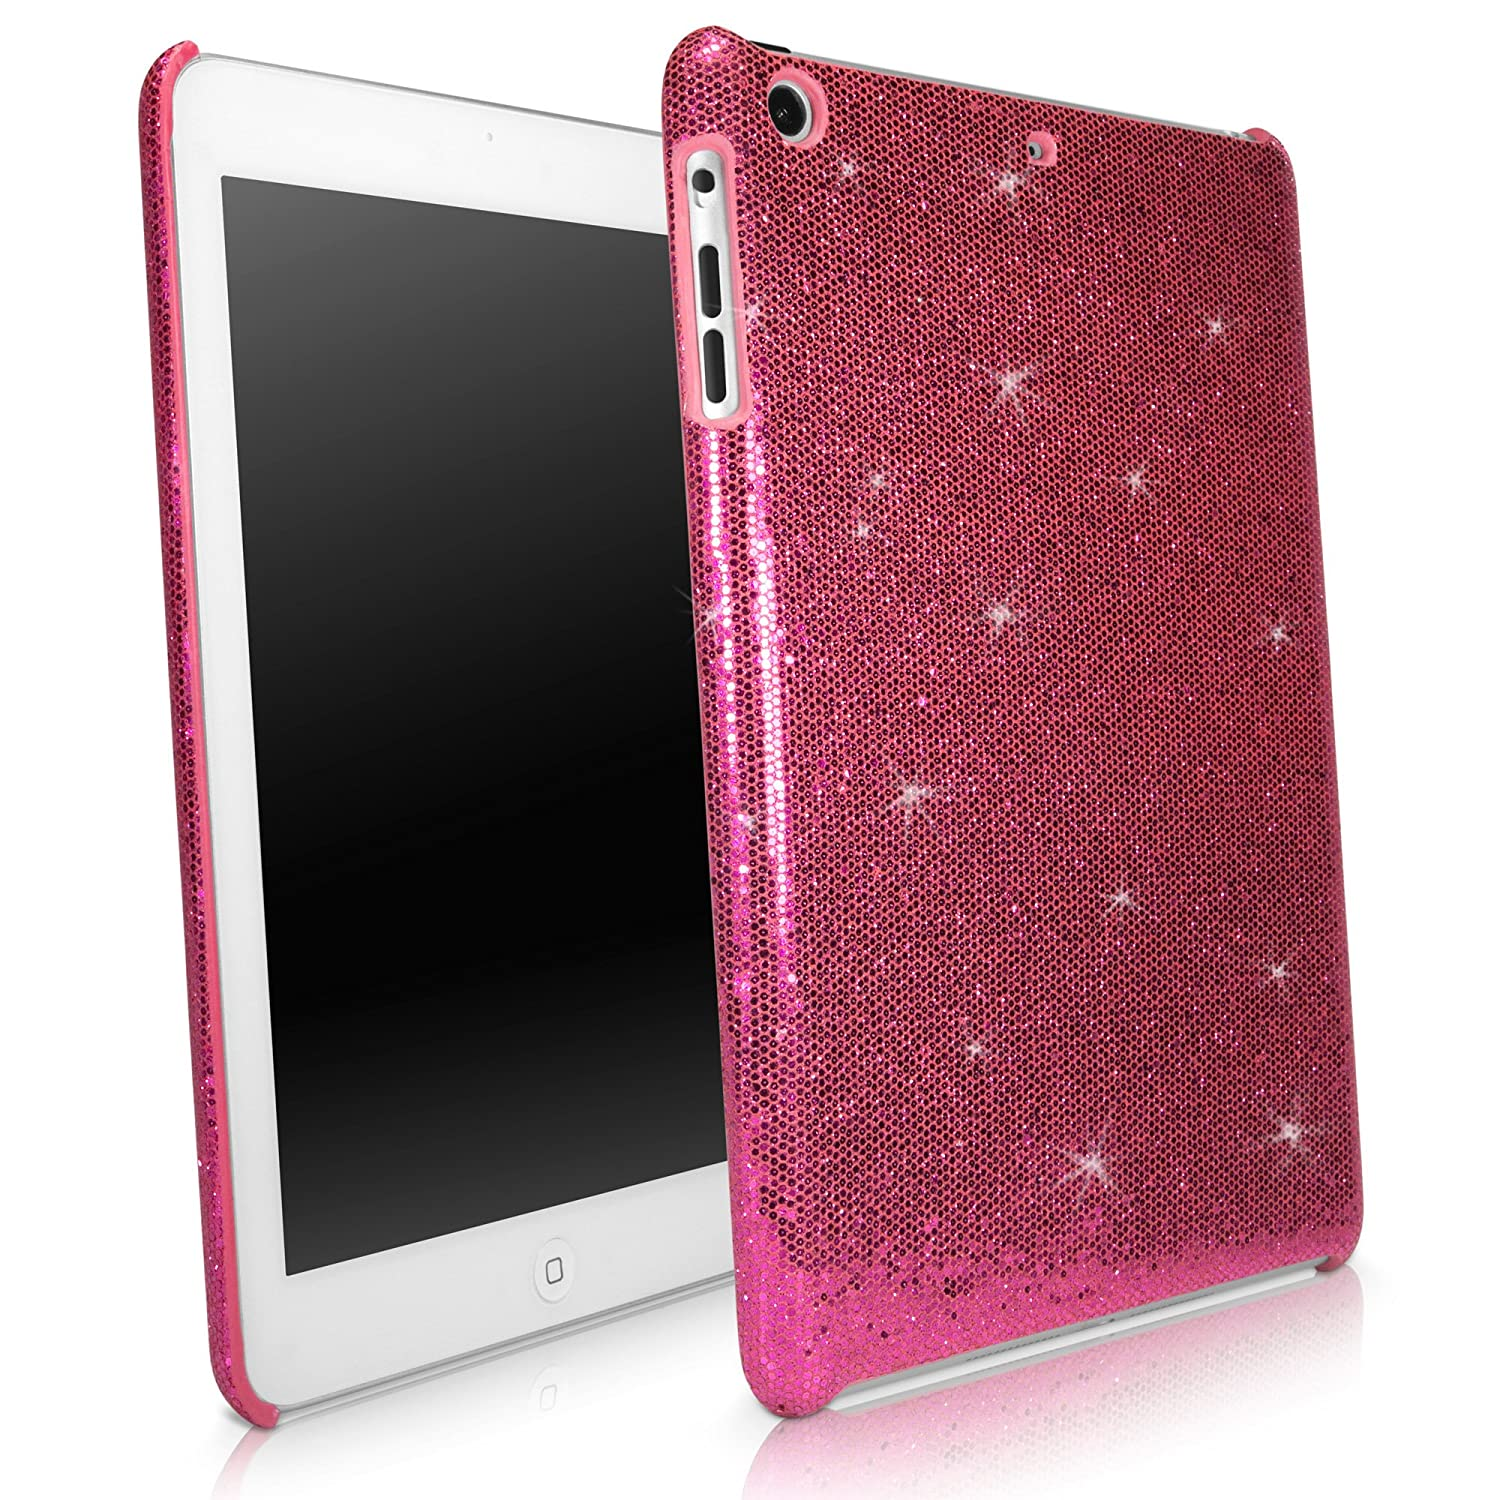 Best Buy Ipad Stand With Cute Rocketfish Acessories Design: Best IPad Cases For Girls' Bling